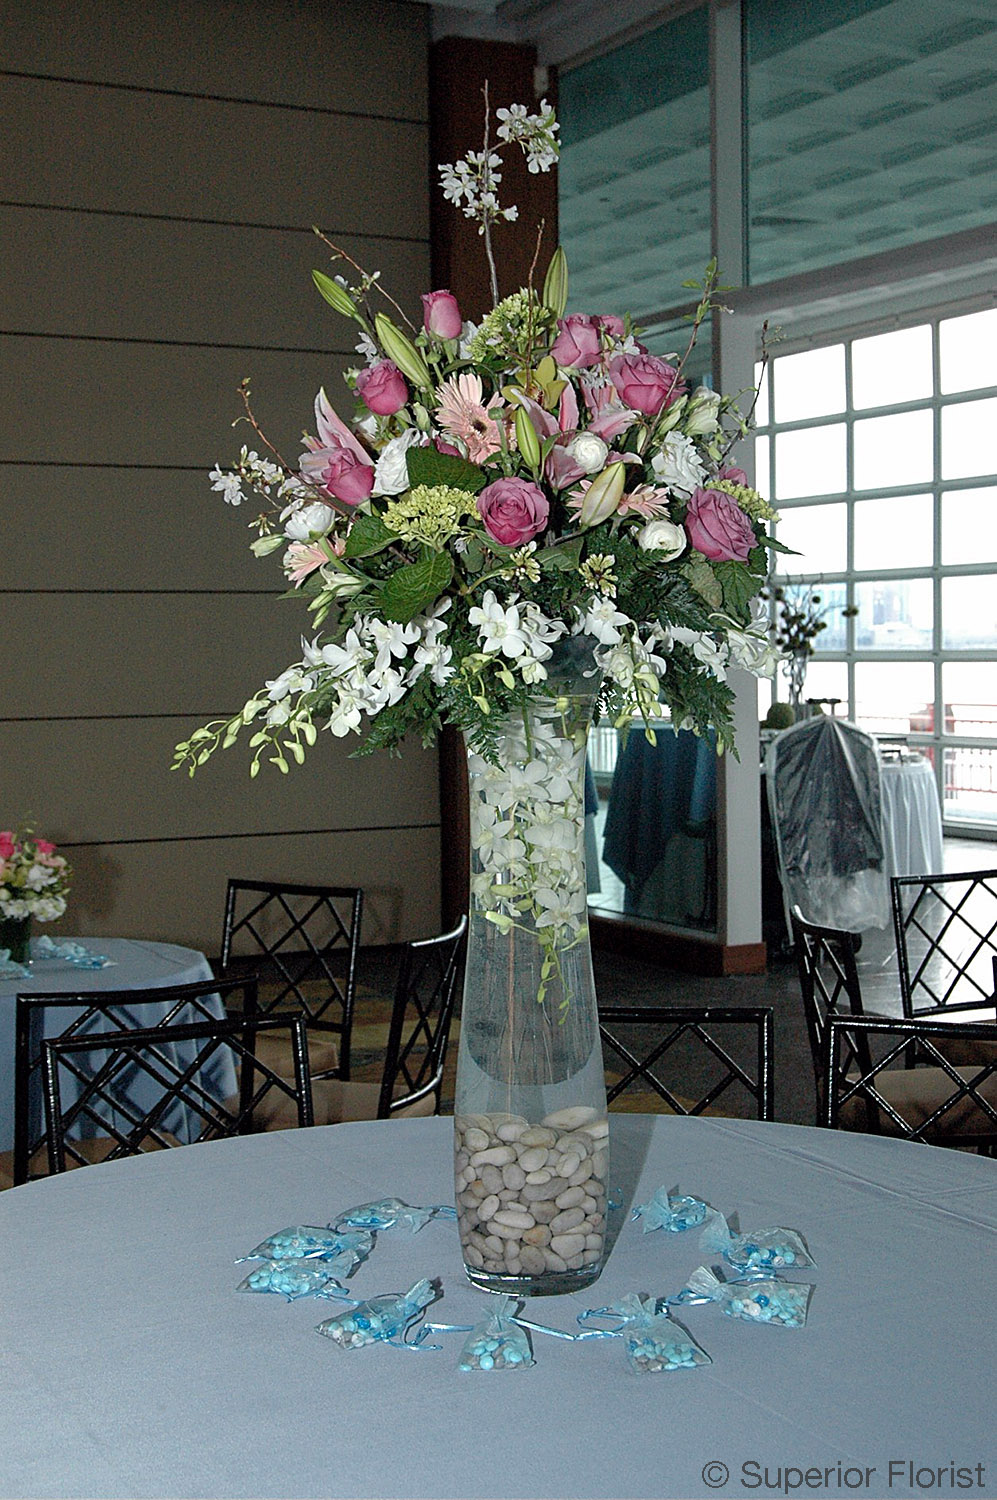 Superior Florist – Centerpieces:  Spring colors of whites pinks and lavenders in a clear glass, fluted vase. Small bags of take-home candies for guests surround the arrangement.